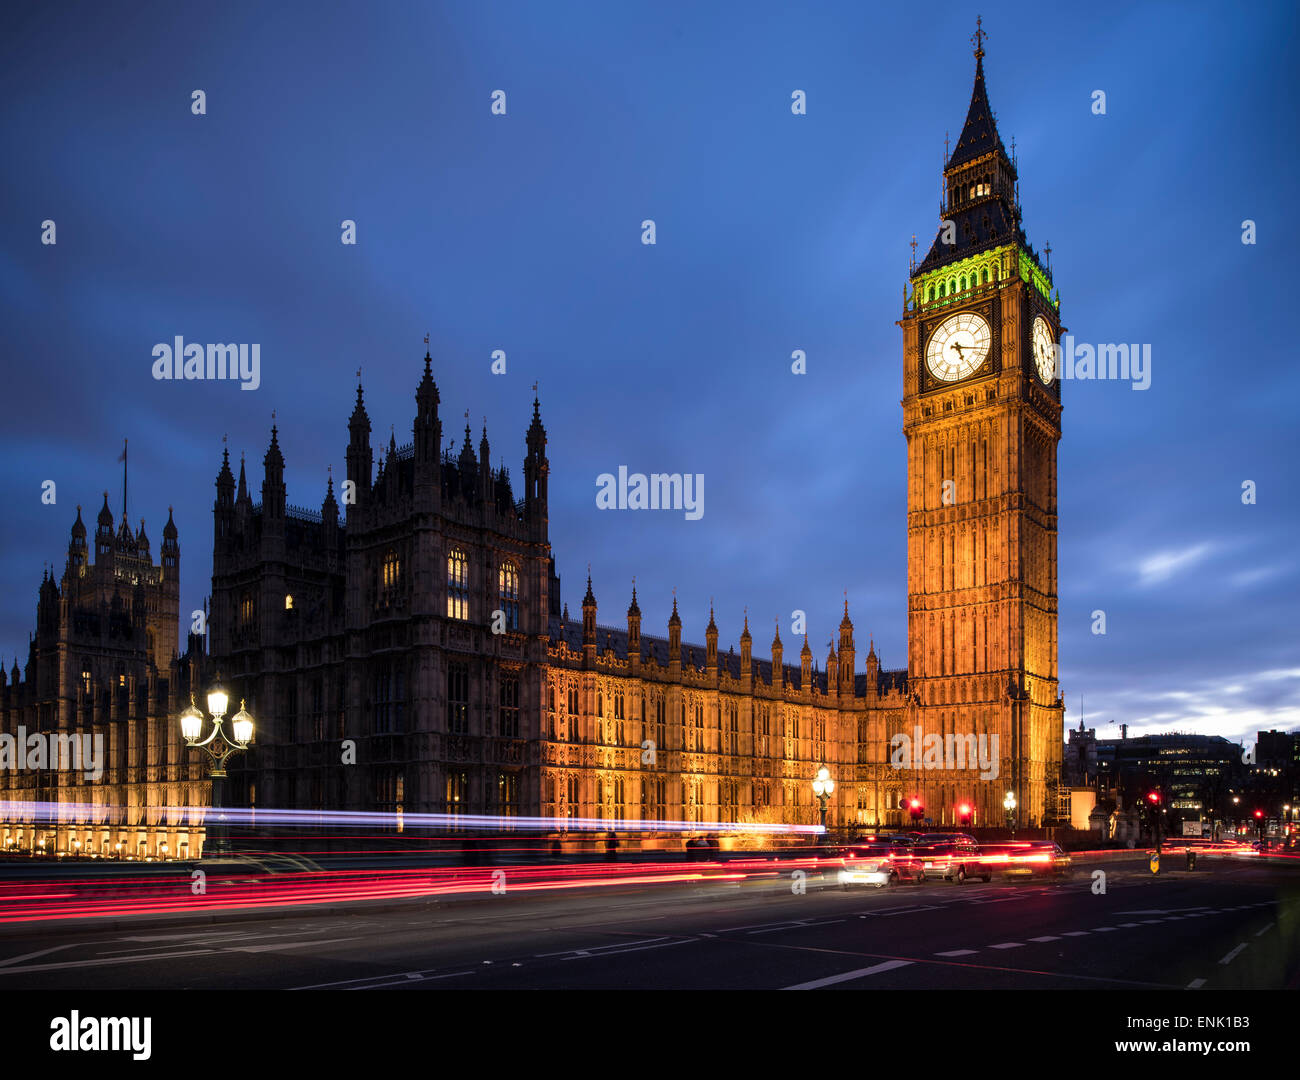 Big Ben, Houses of Parliament, UNESCO World Heritage Site, Westminster, London, England, United Kingdom, Europe - Stock Image